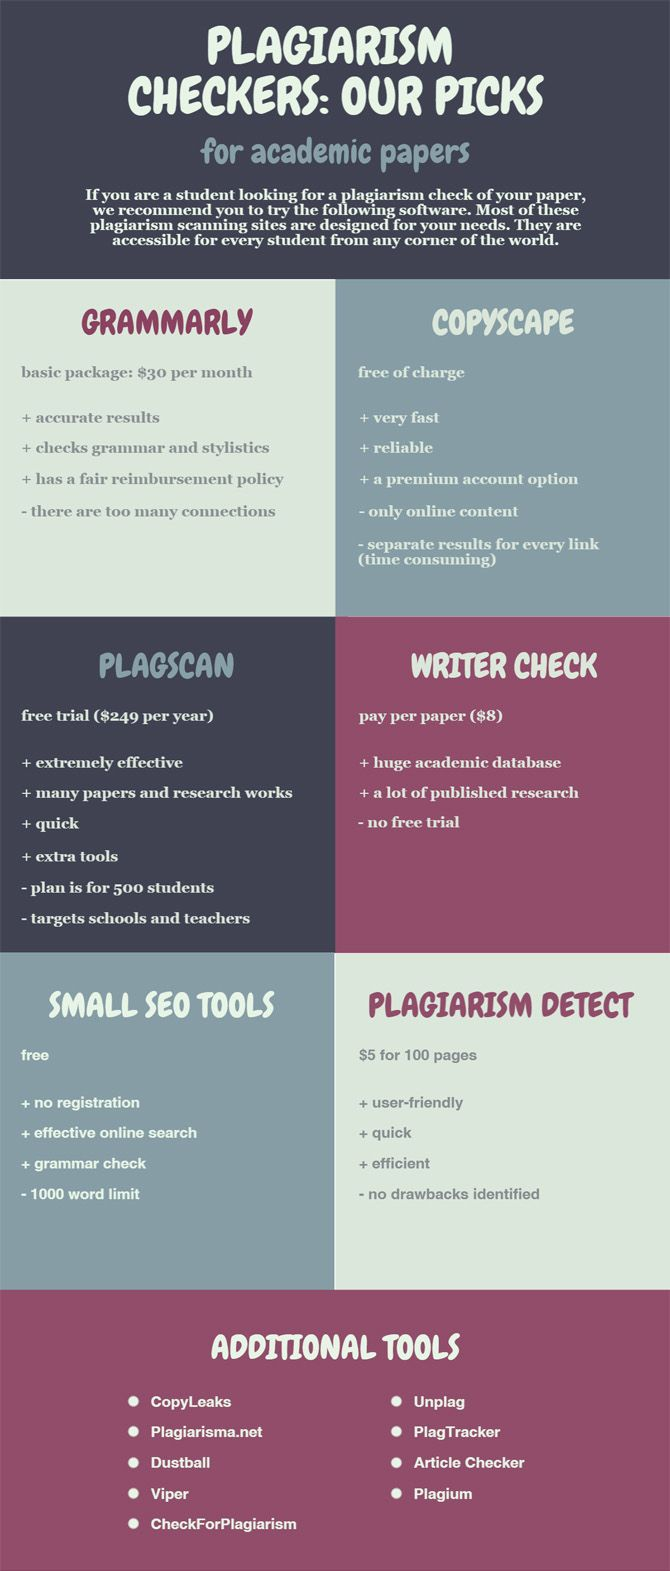 Plagiarism checkers | Smart.Study Blog #Plagiarism #StudentResources #StudyTips #plagiarismtool